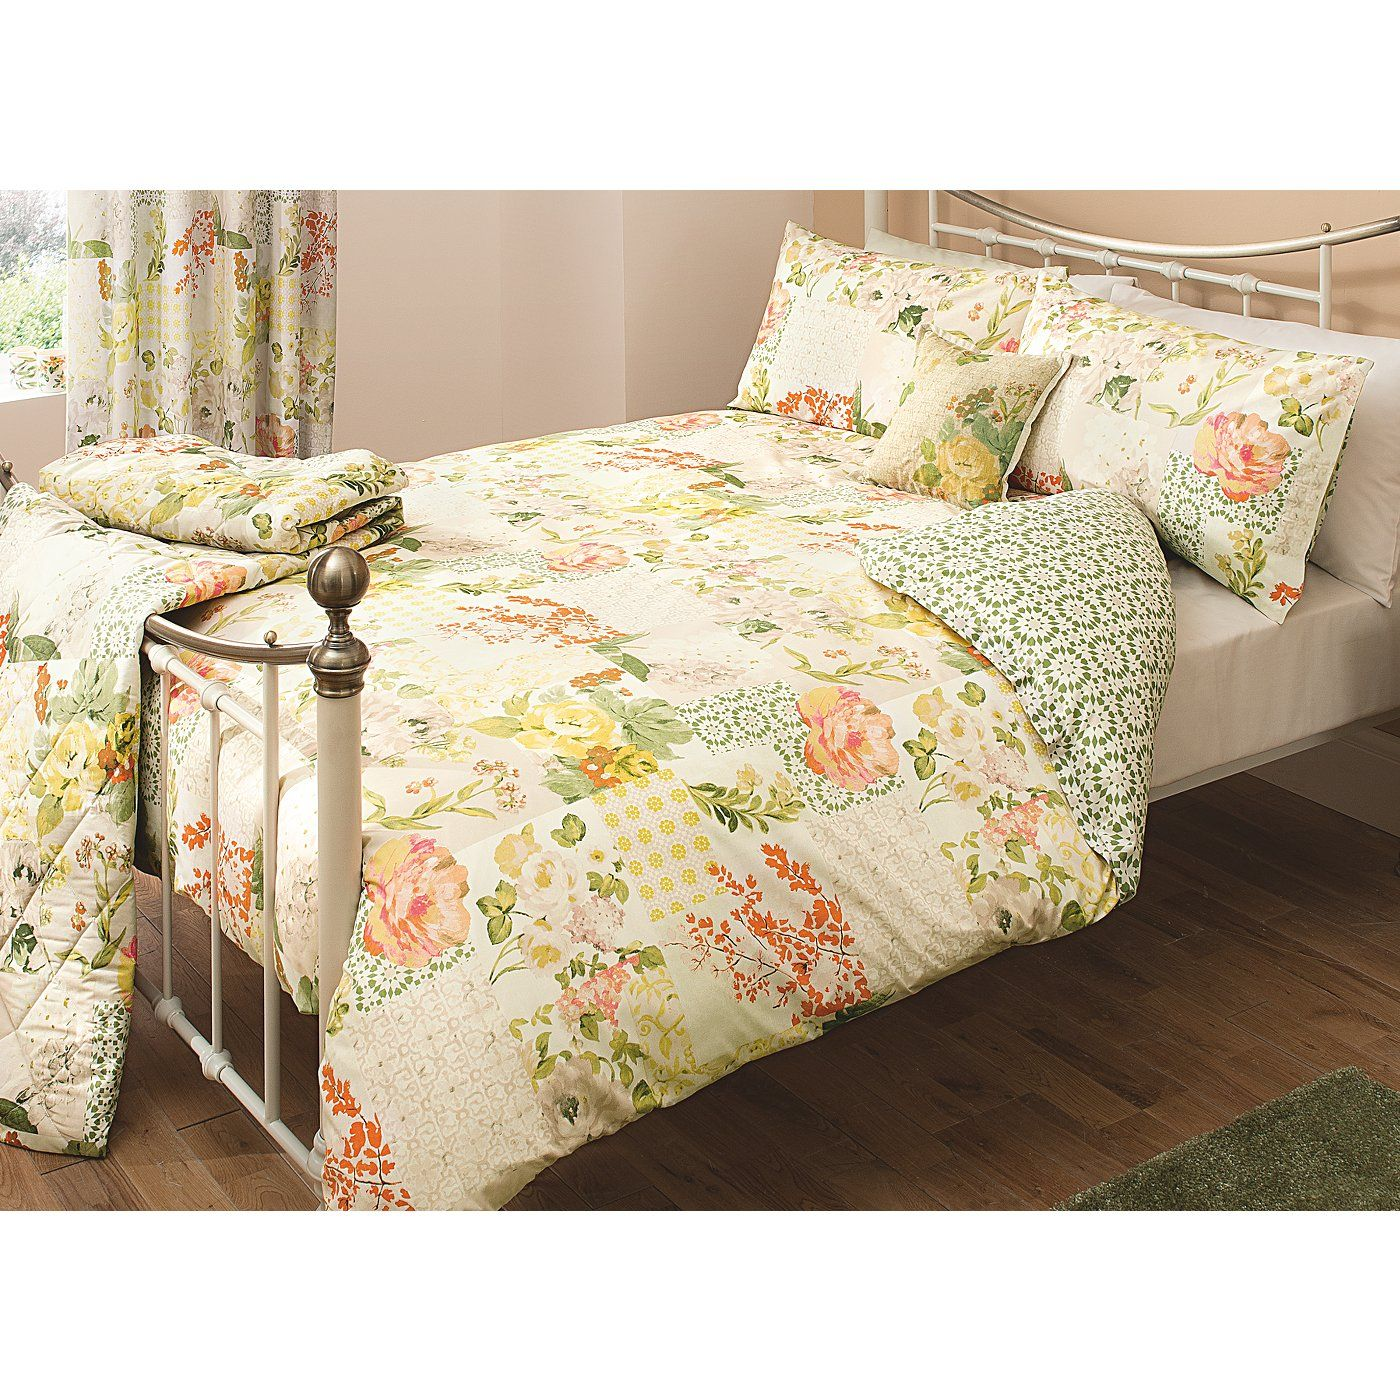 Mix Fl With Geo Ornament George Home Bellezza Patchwork Duvet Range From Our